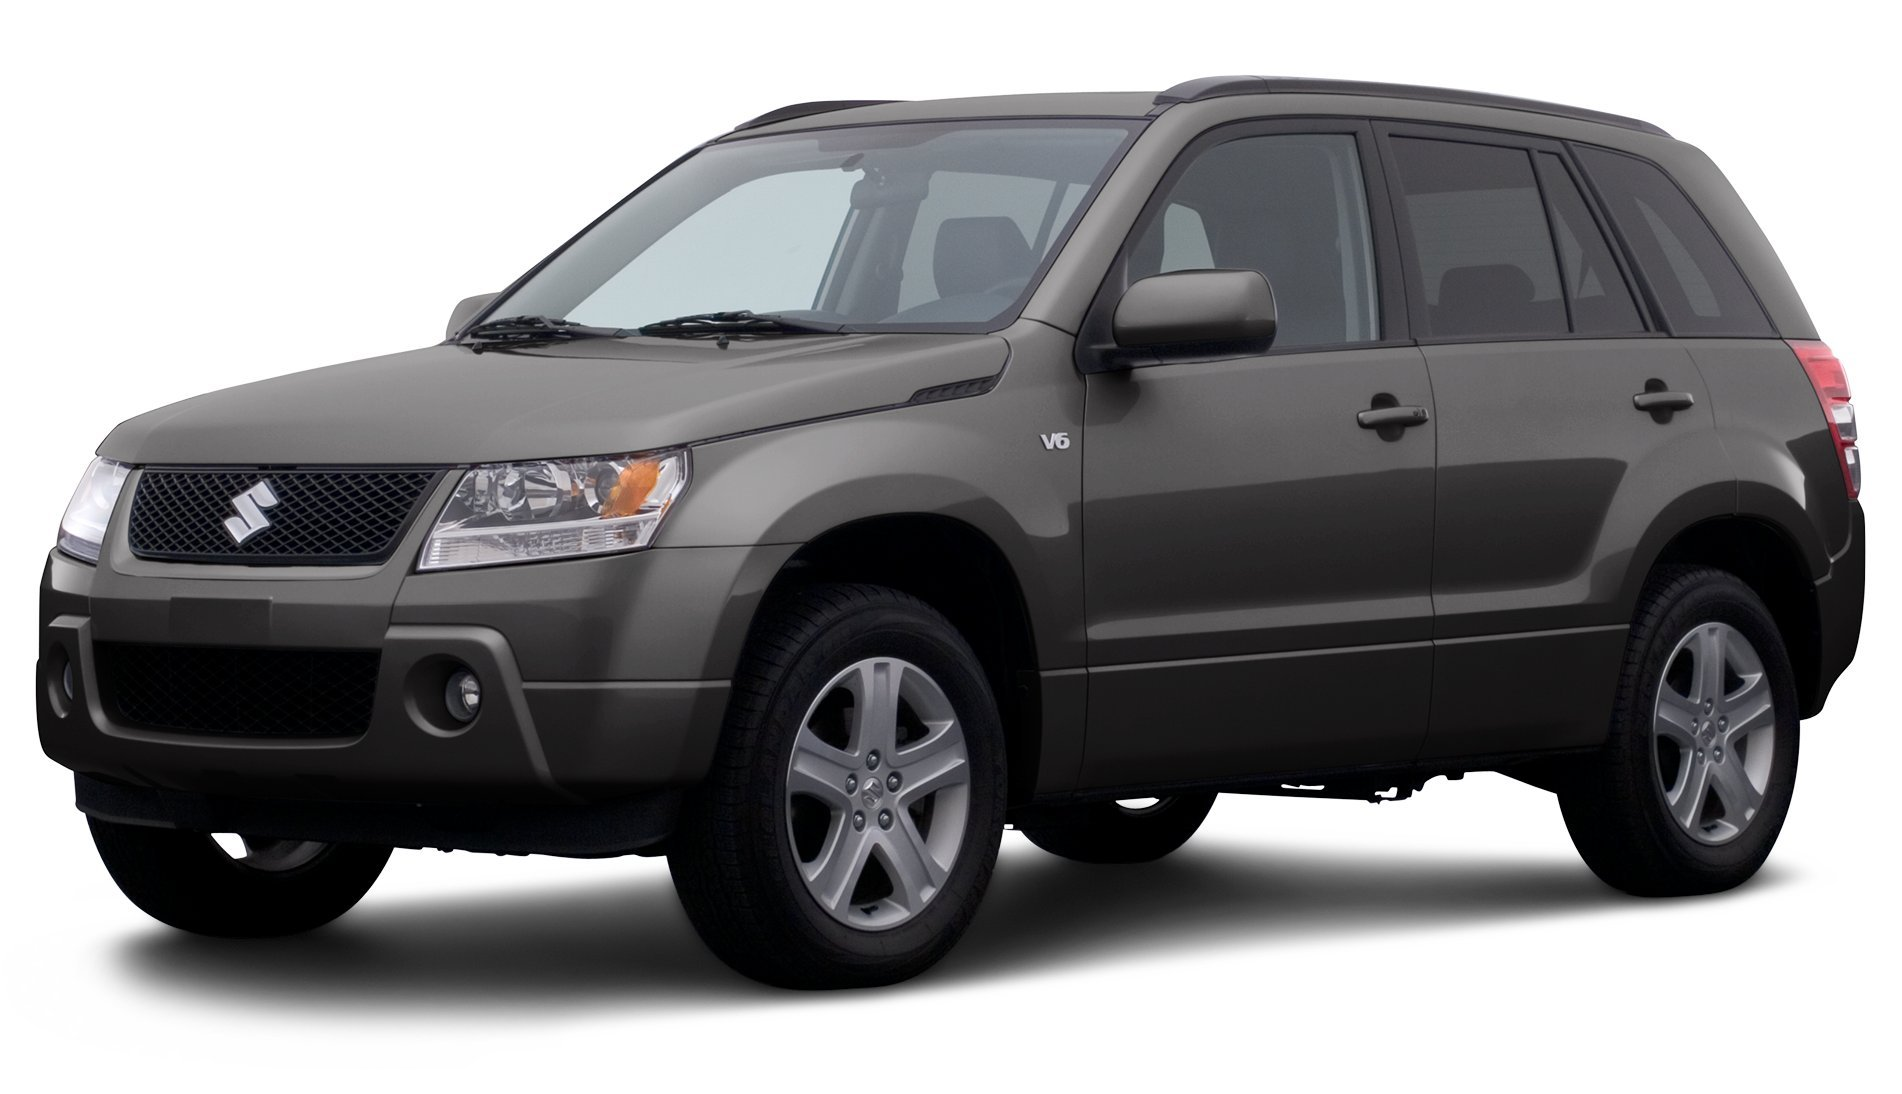 ... 2007 Suzuki Grand Vitara Xsport, 2-Wheel Drive 4-Door Automatic  Transmission ...